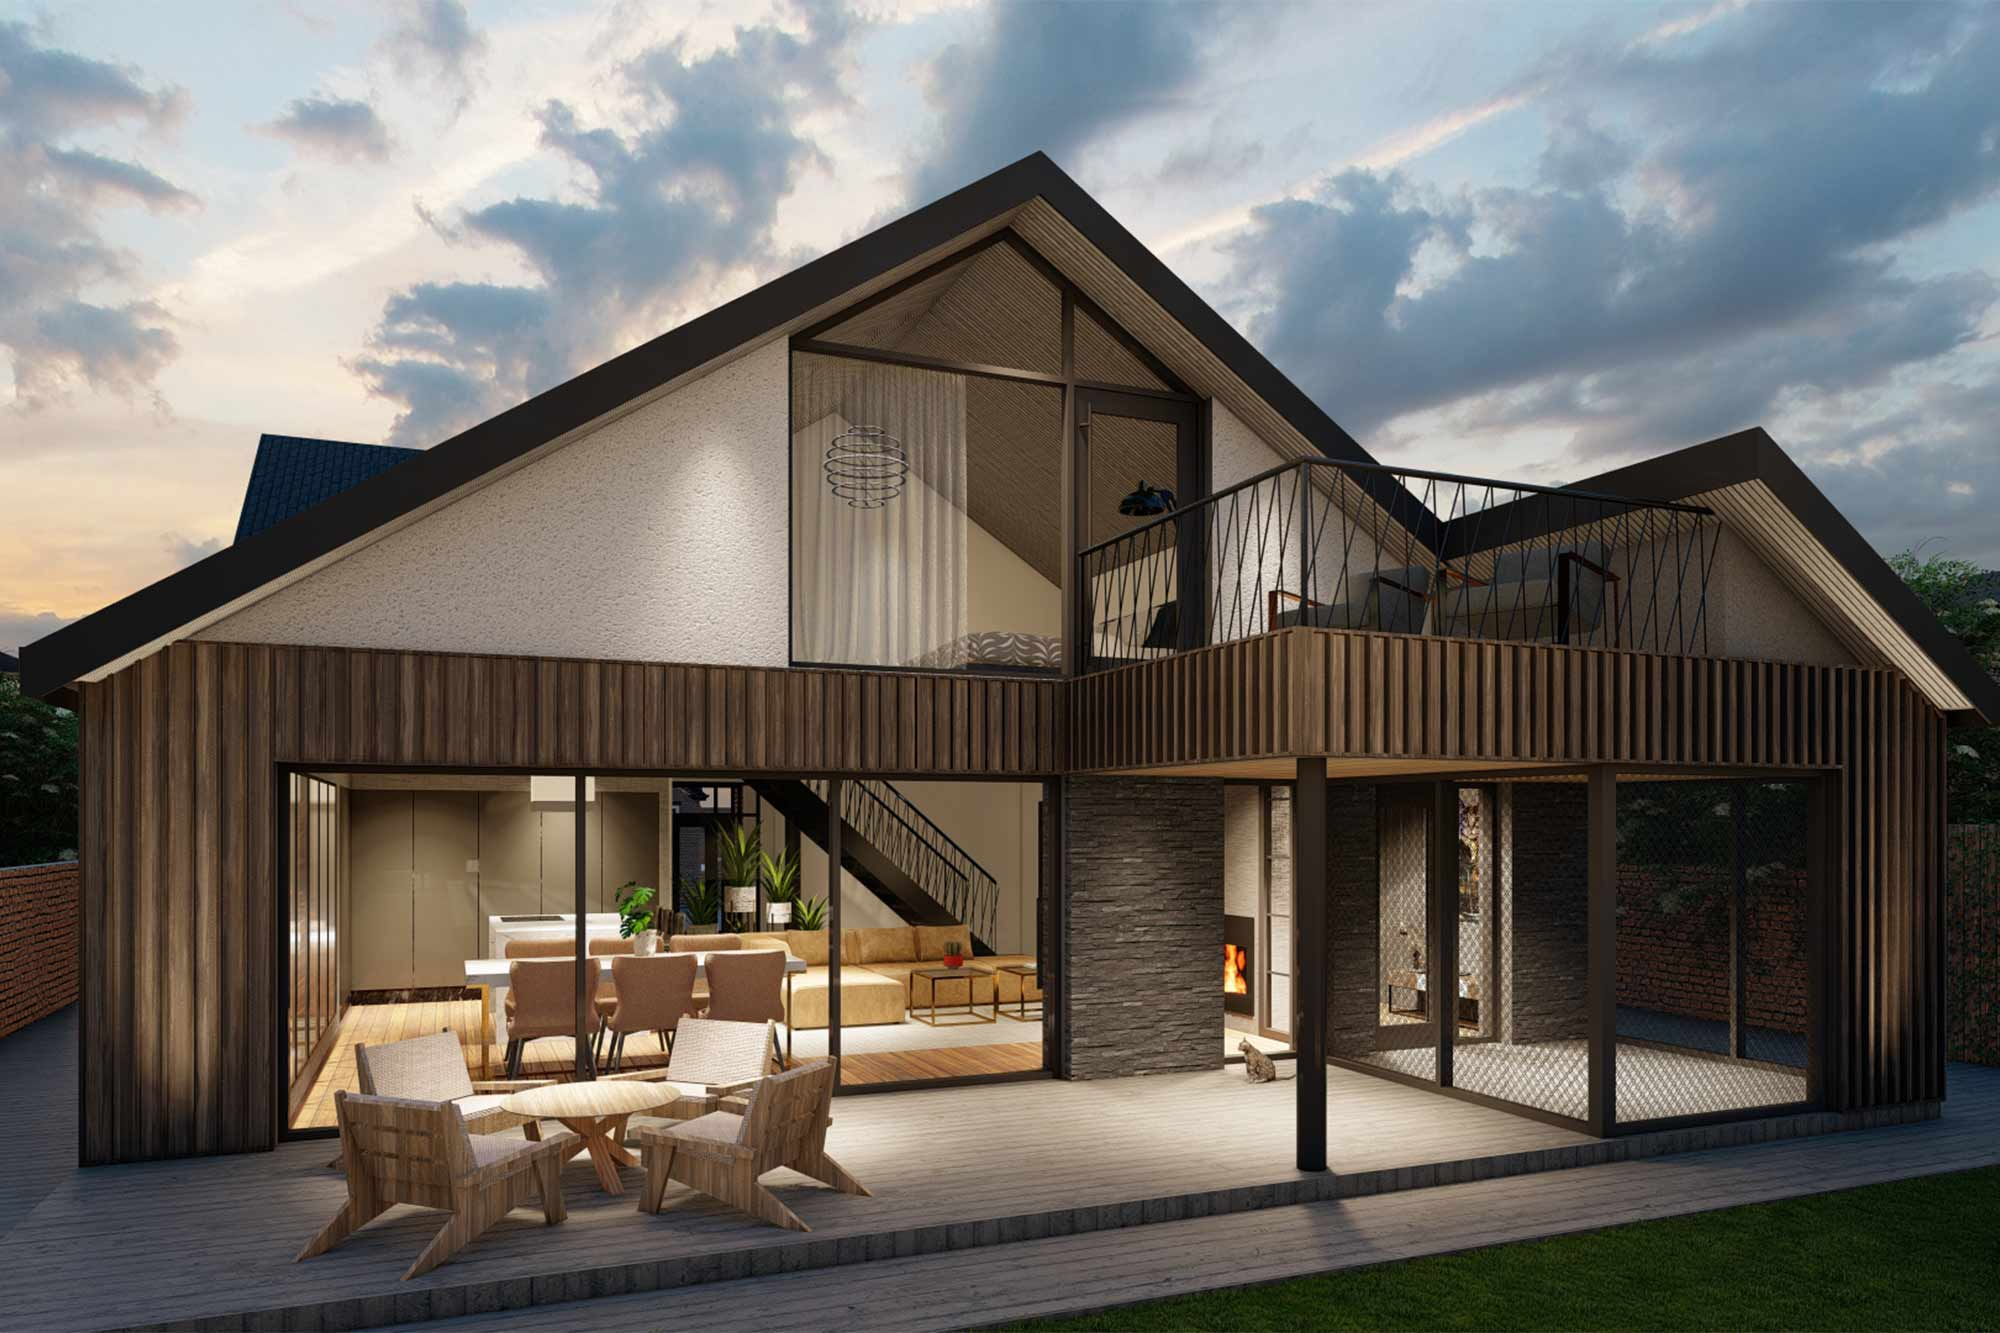 Timber clad, modern bungalow rear extension with balcony and catio